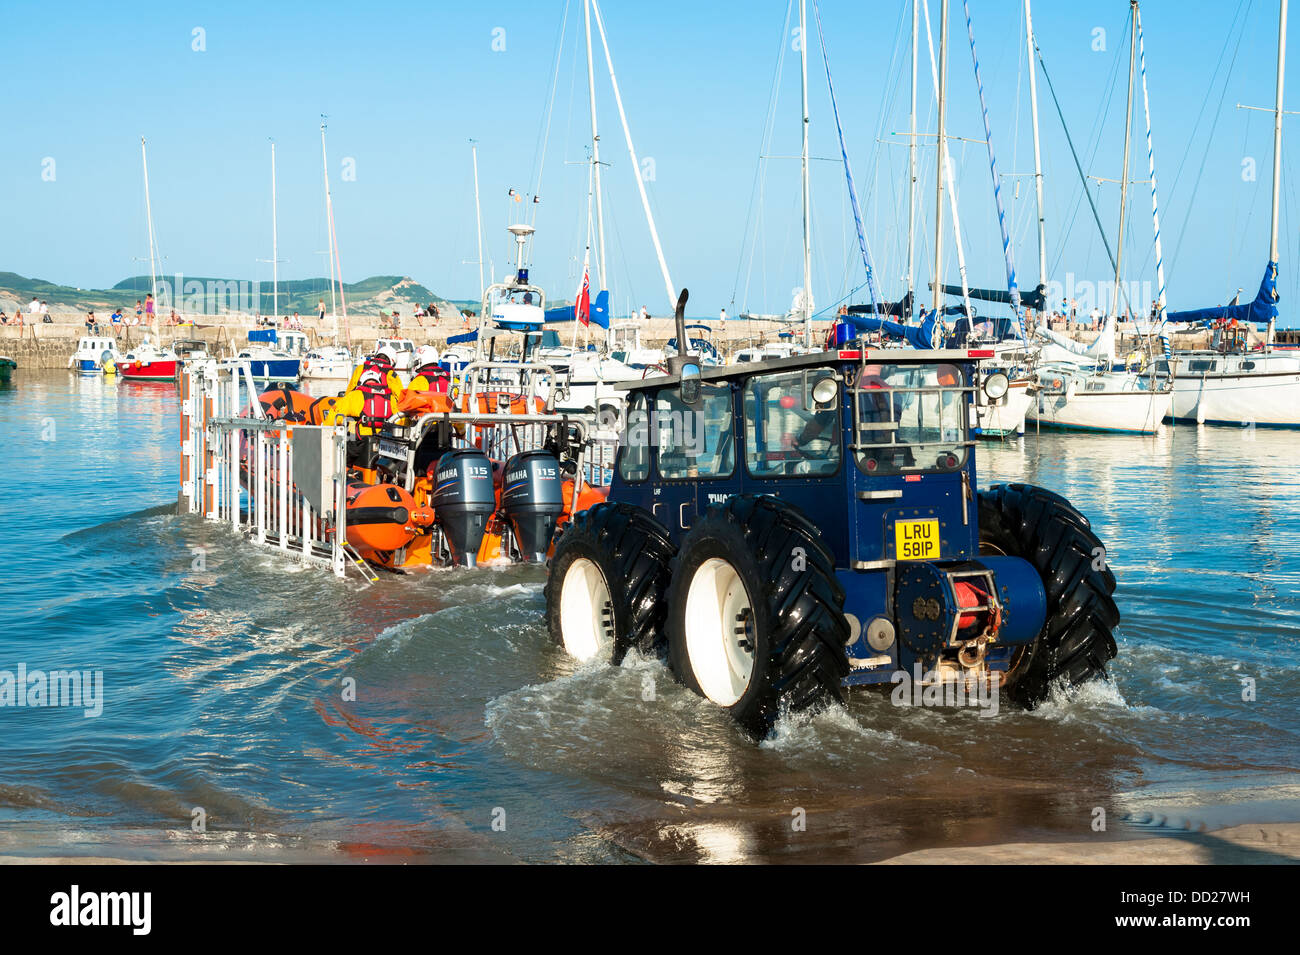 RNLI lifeboat launching on a training exercise at Lyme Regis harbour, Dorset, UK. Inshore inflatable rib lifeboat - Stock Image